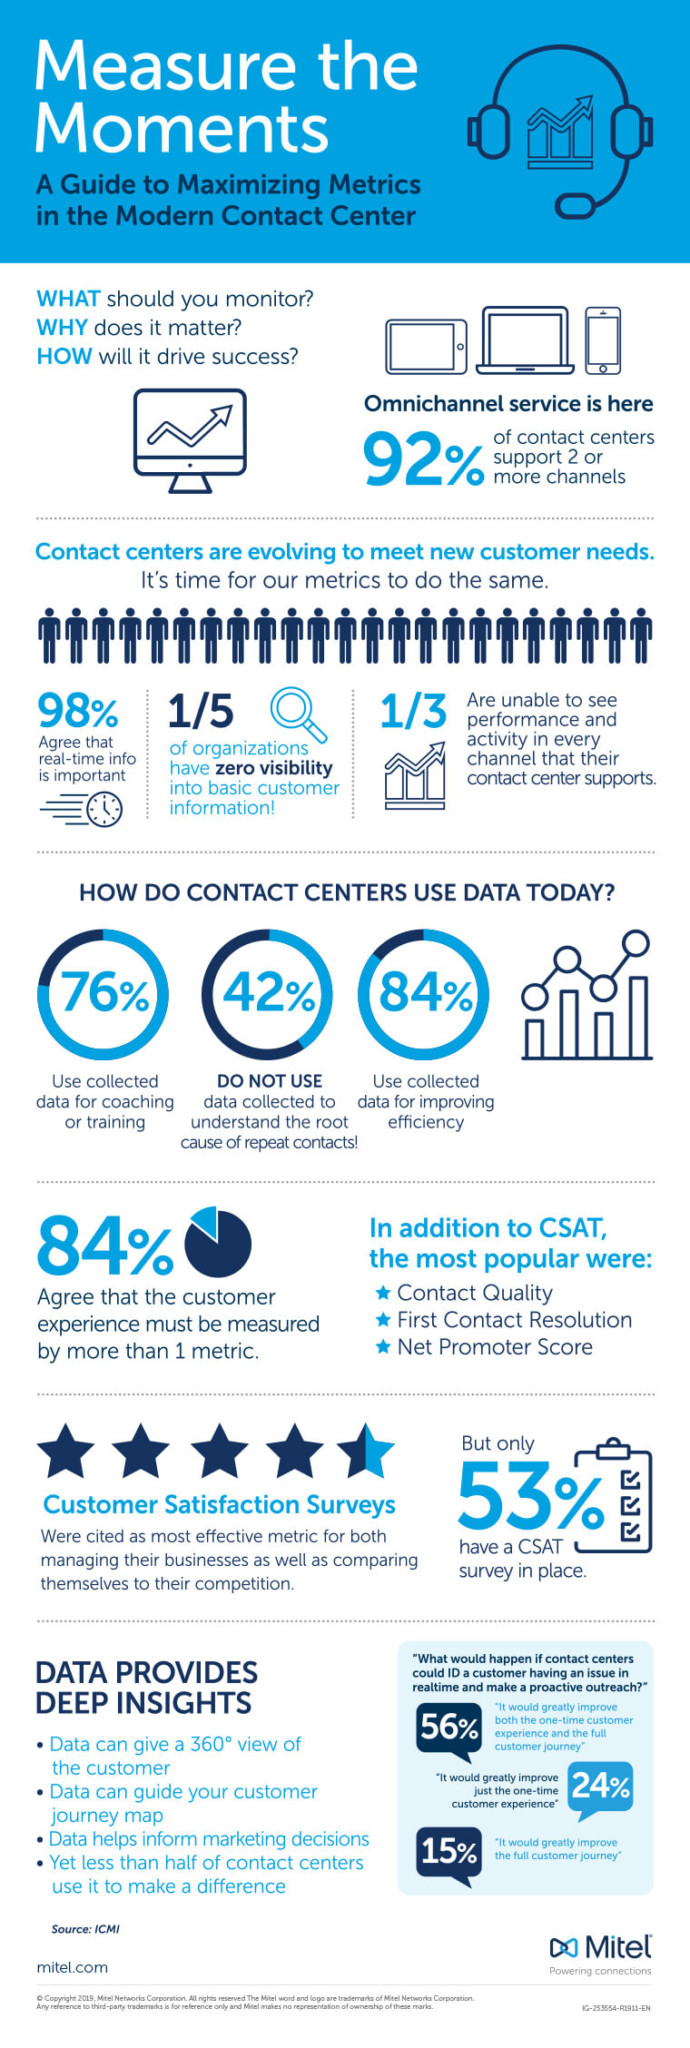 Maximize metrics in contact center